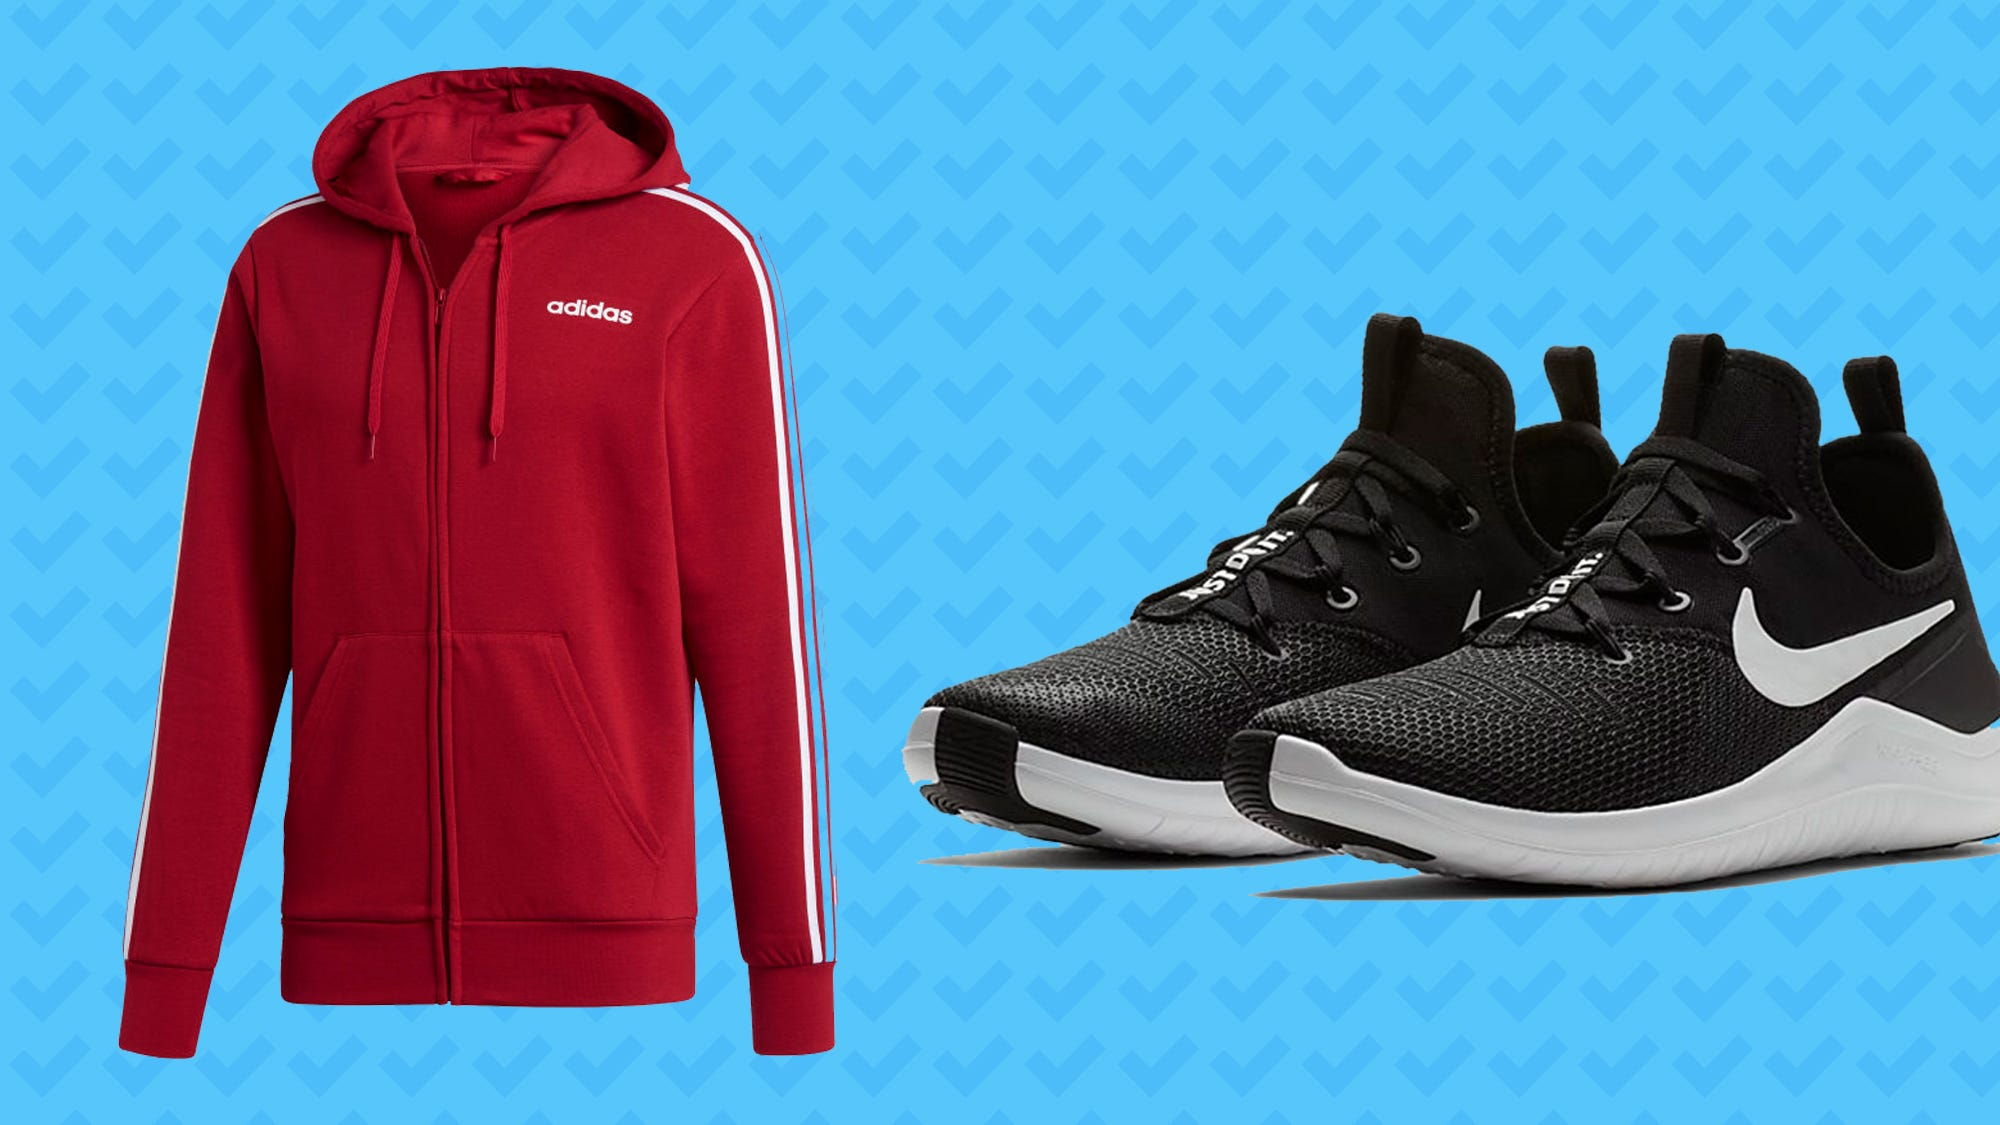 The best Nike and Adidas deals